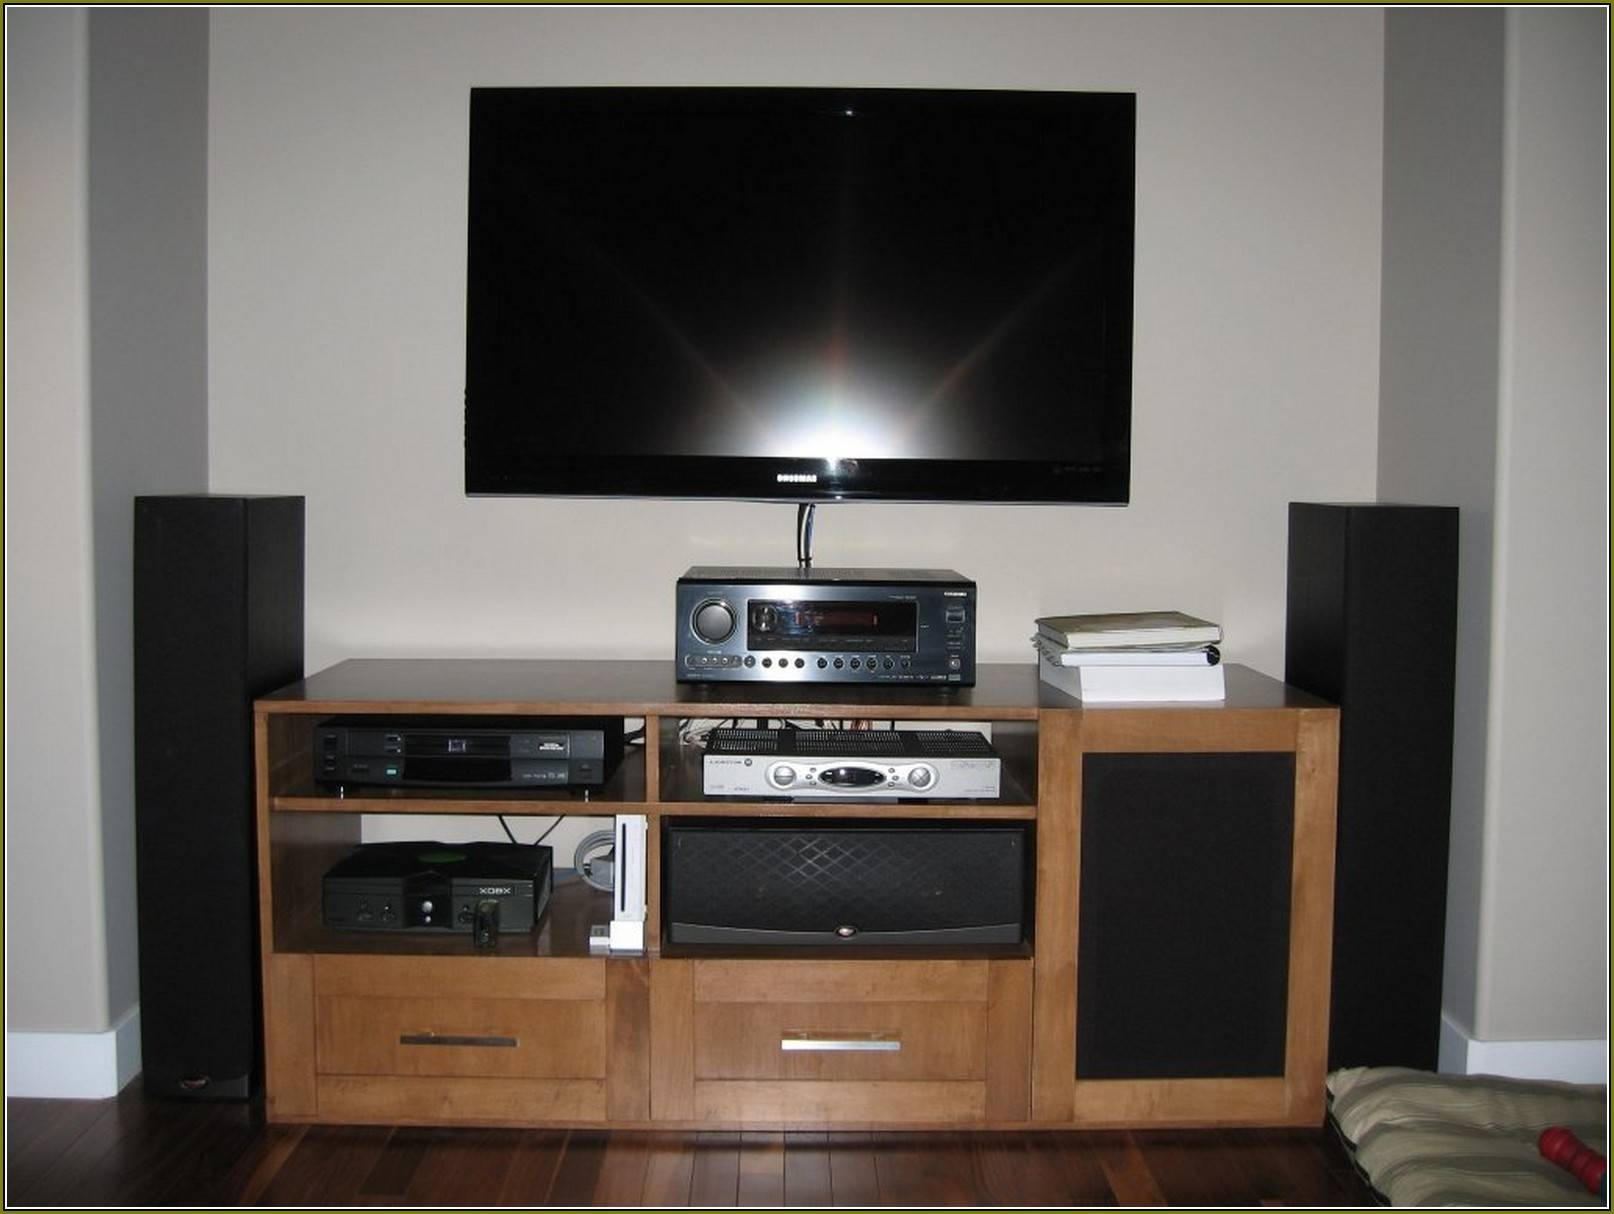 Contemporary Tv Cabinets For Flat Screens | Home Design Ideas For Contemporary Tv Cabinets For Flat Screens (View 4 of 15)